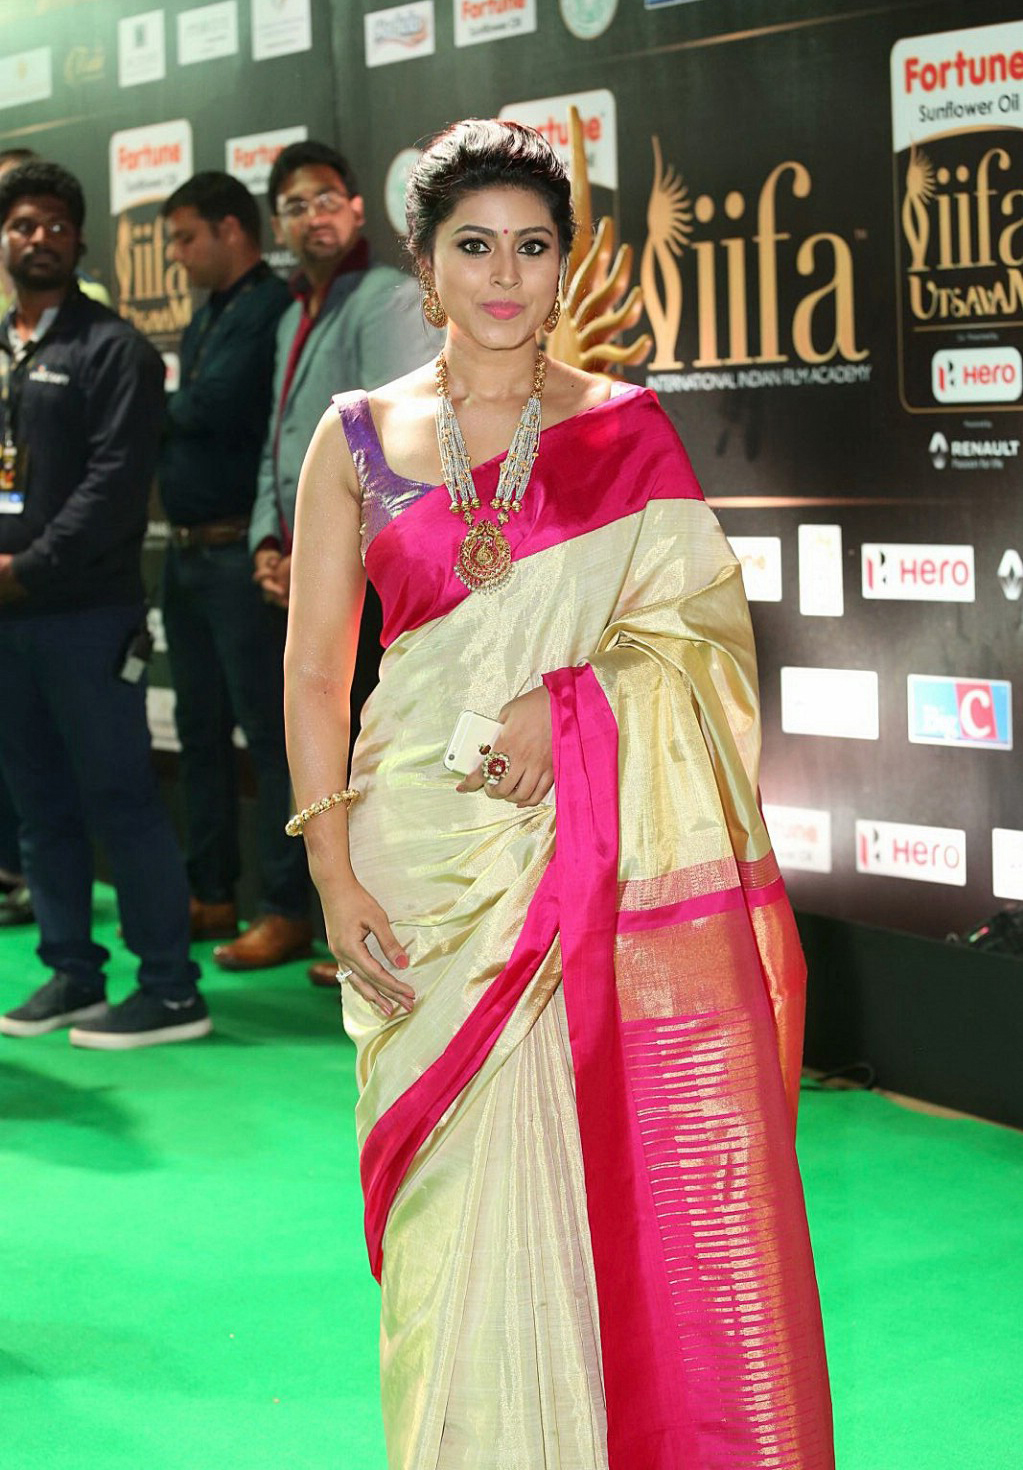 sneha in traditional saree